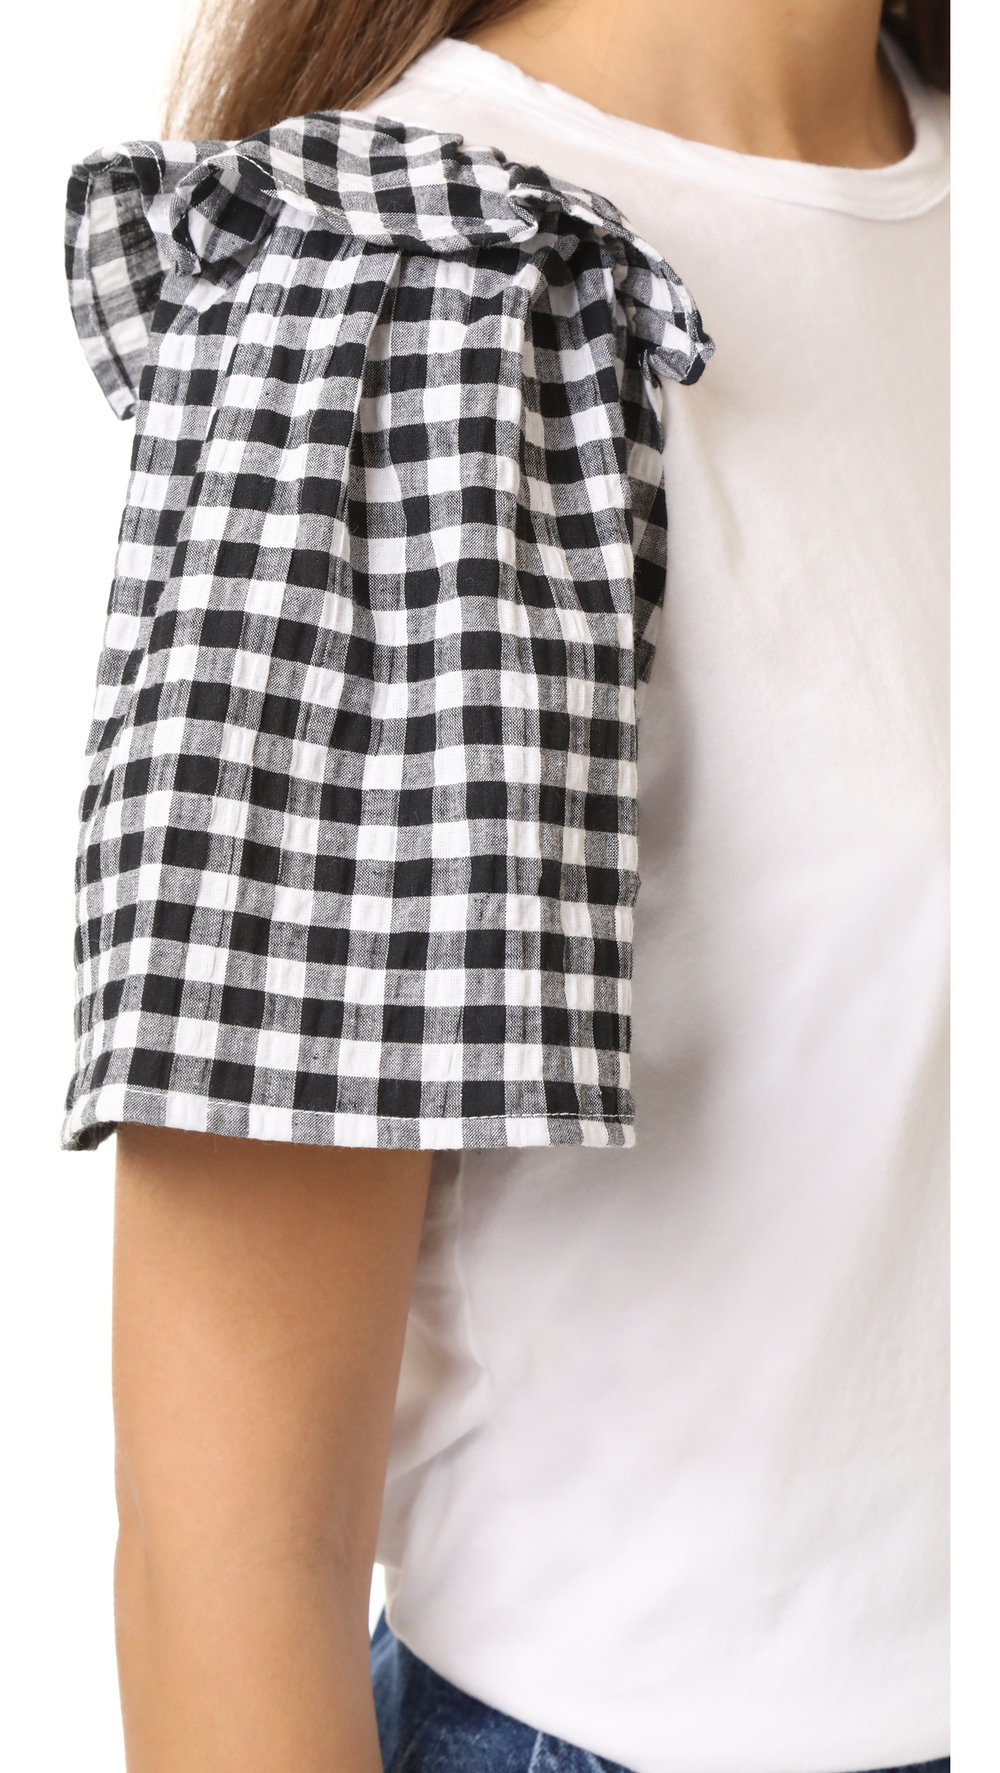 gingham sleeve top